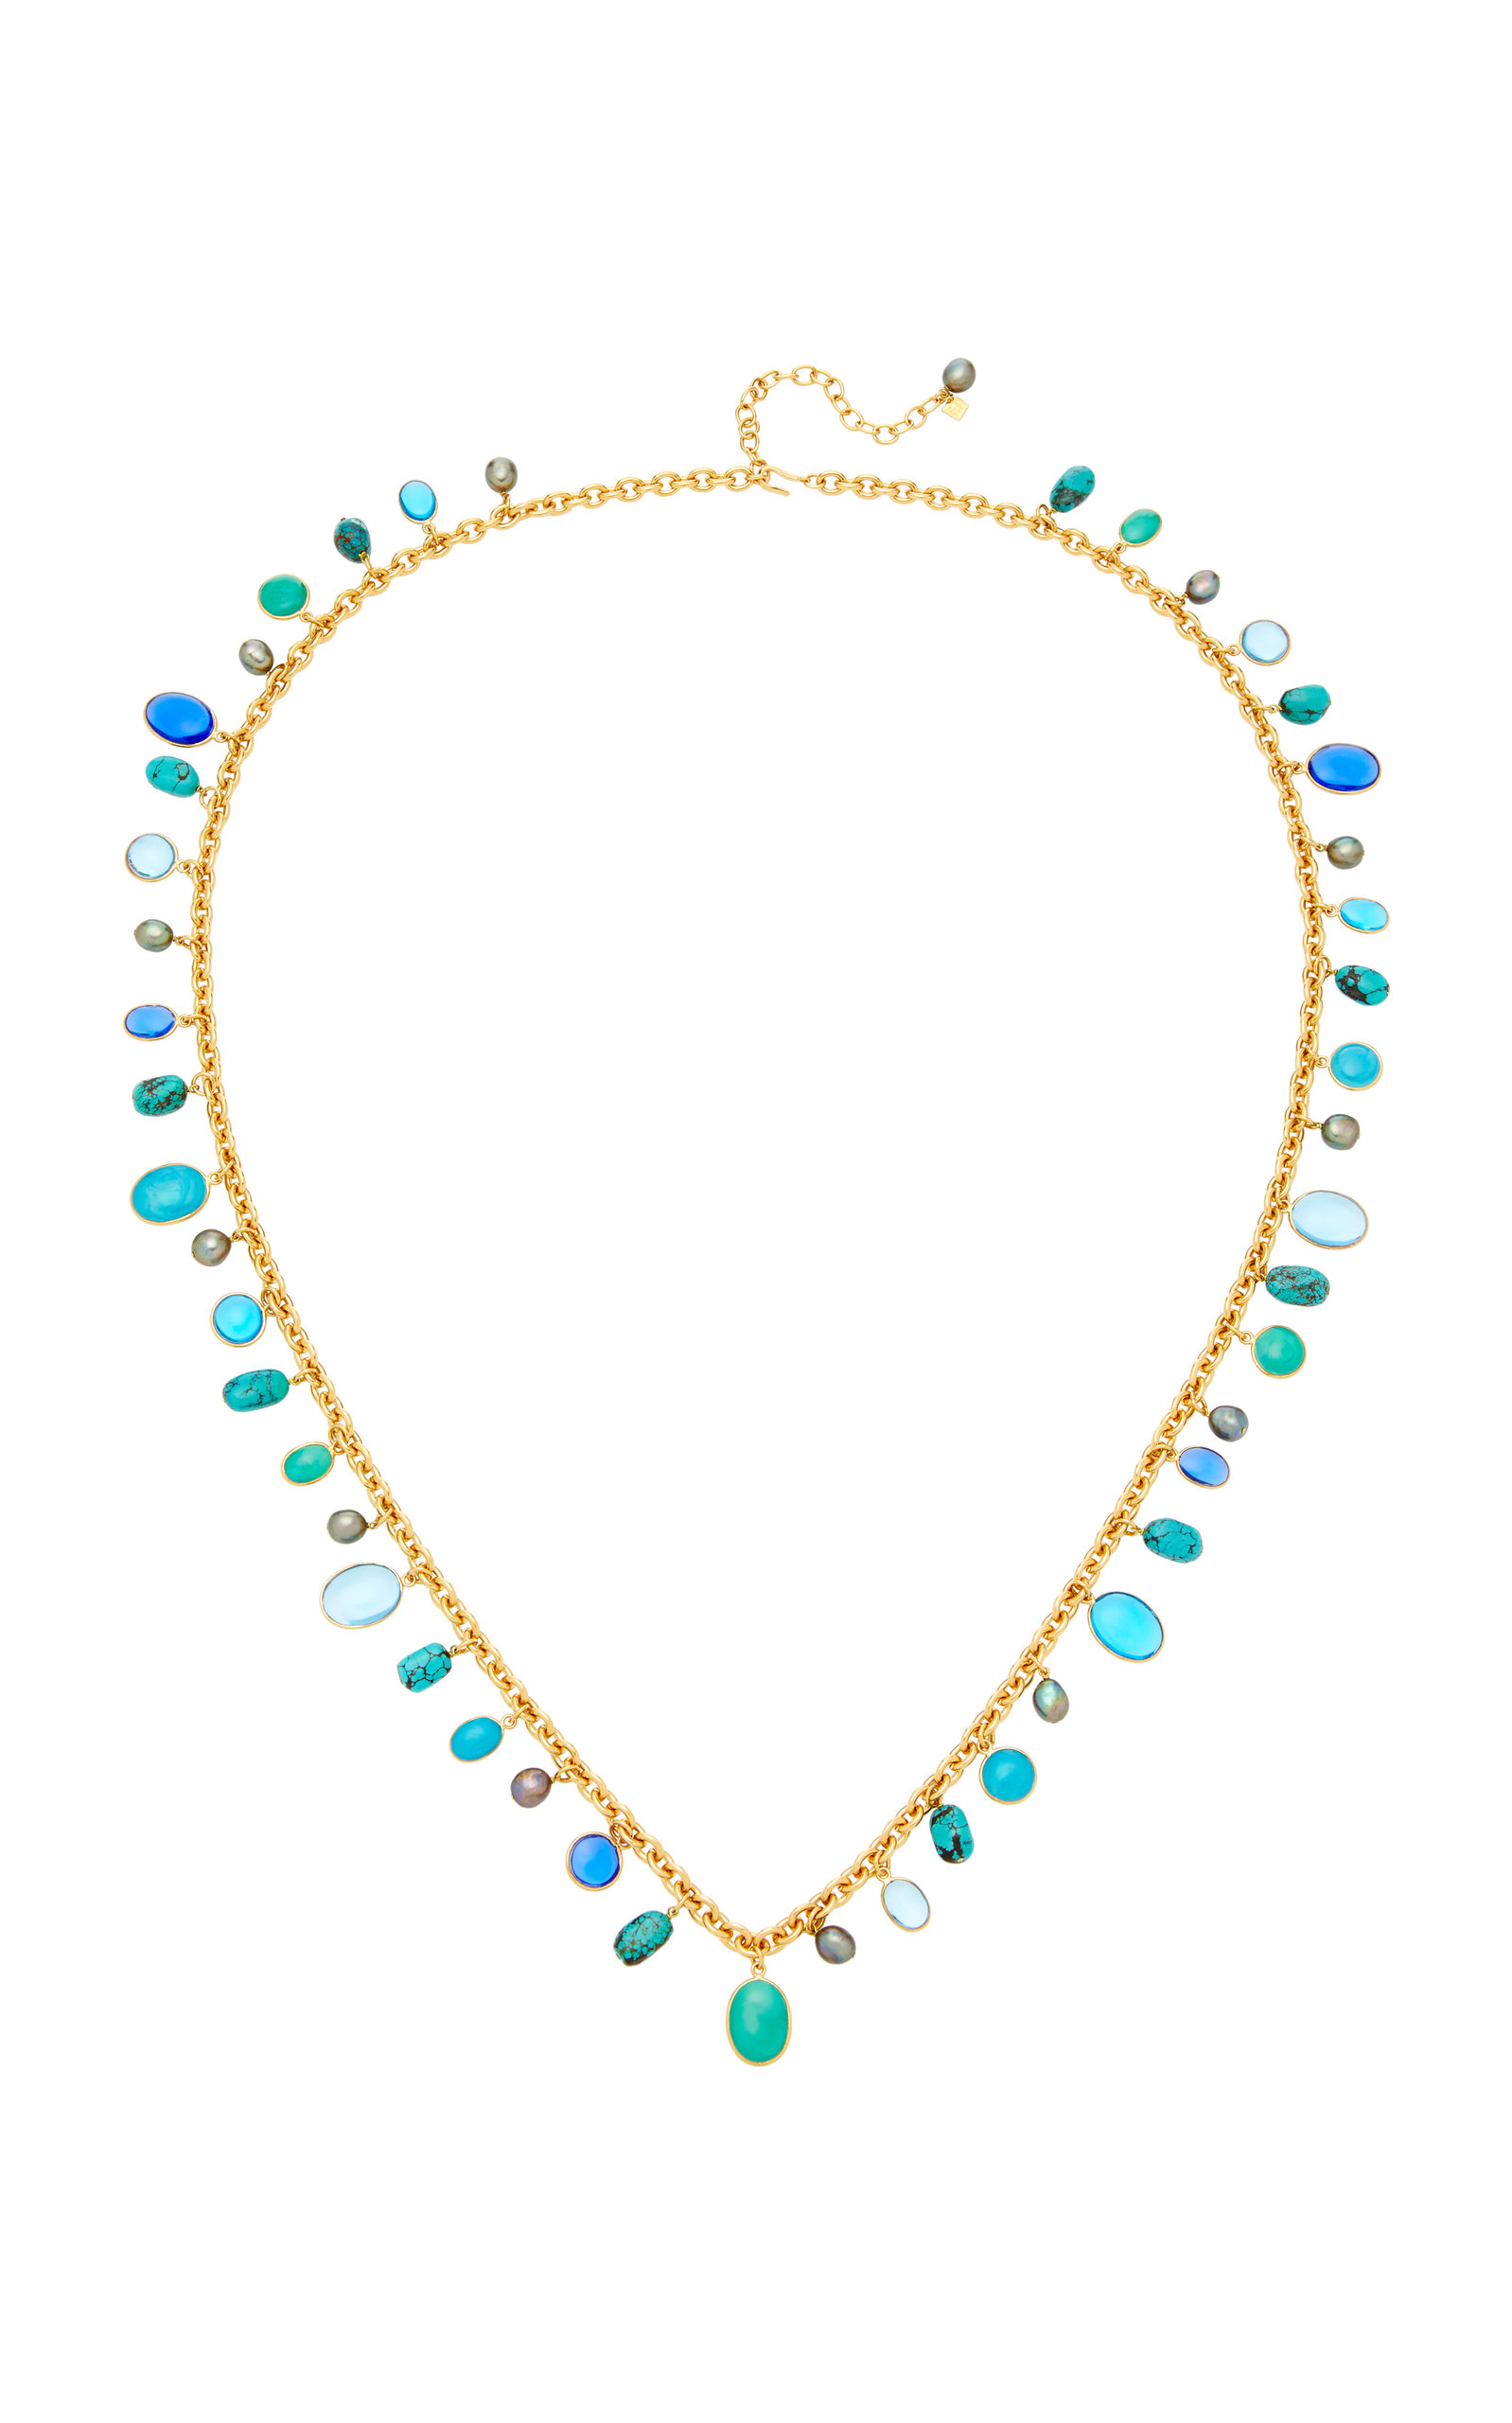 LOULOU DE LA FALAISE 24K GOLD-PLATED STONE AND TURQUOISE NECKLACE